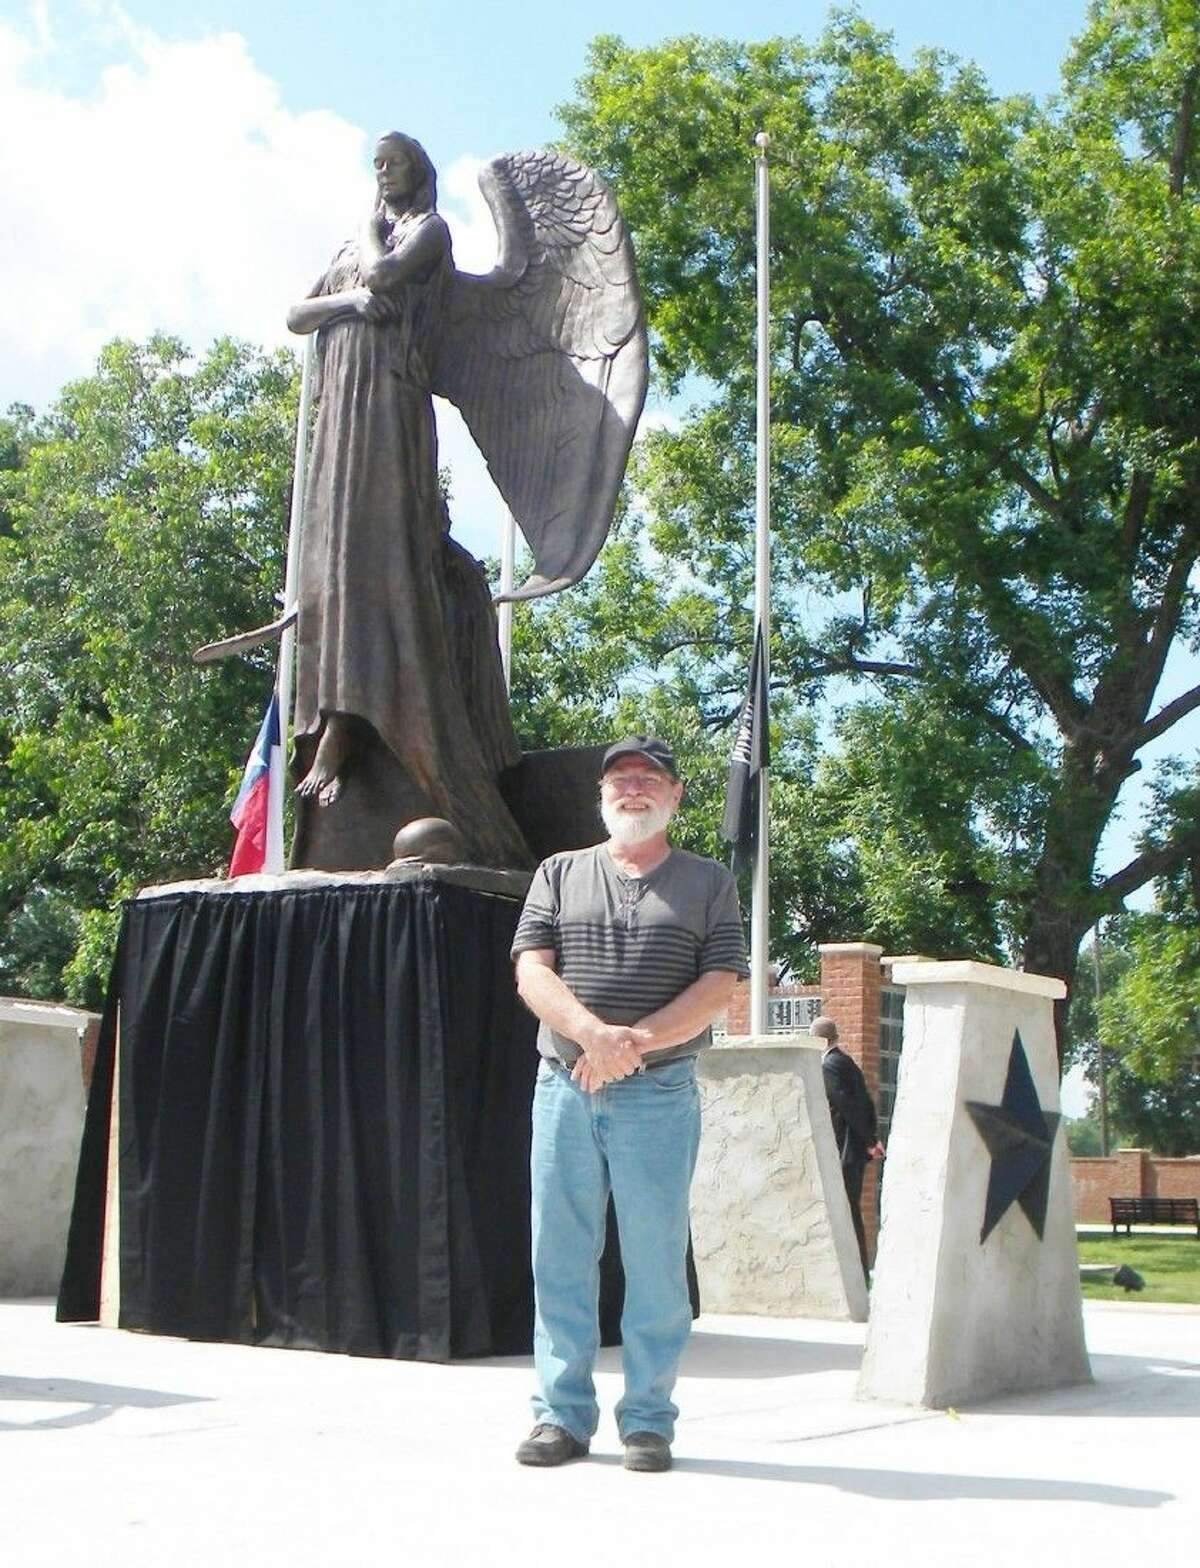 Bill McGlaun stands before a 17-foot tall angel he created to honor the nation's fallen service personnel. The angel is located in Smithville, Texas.